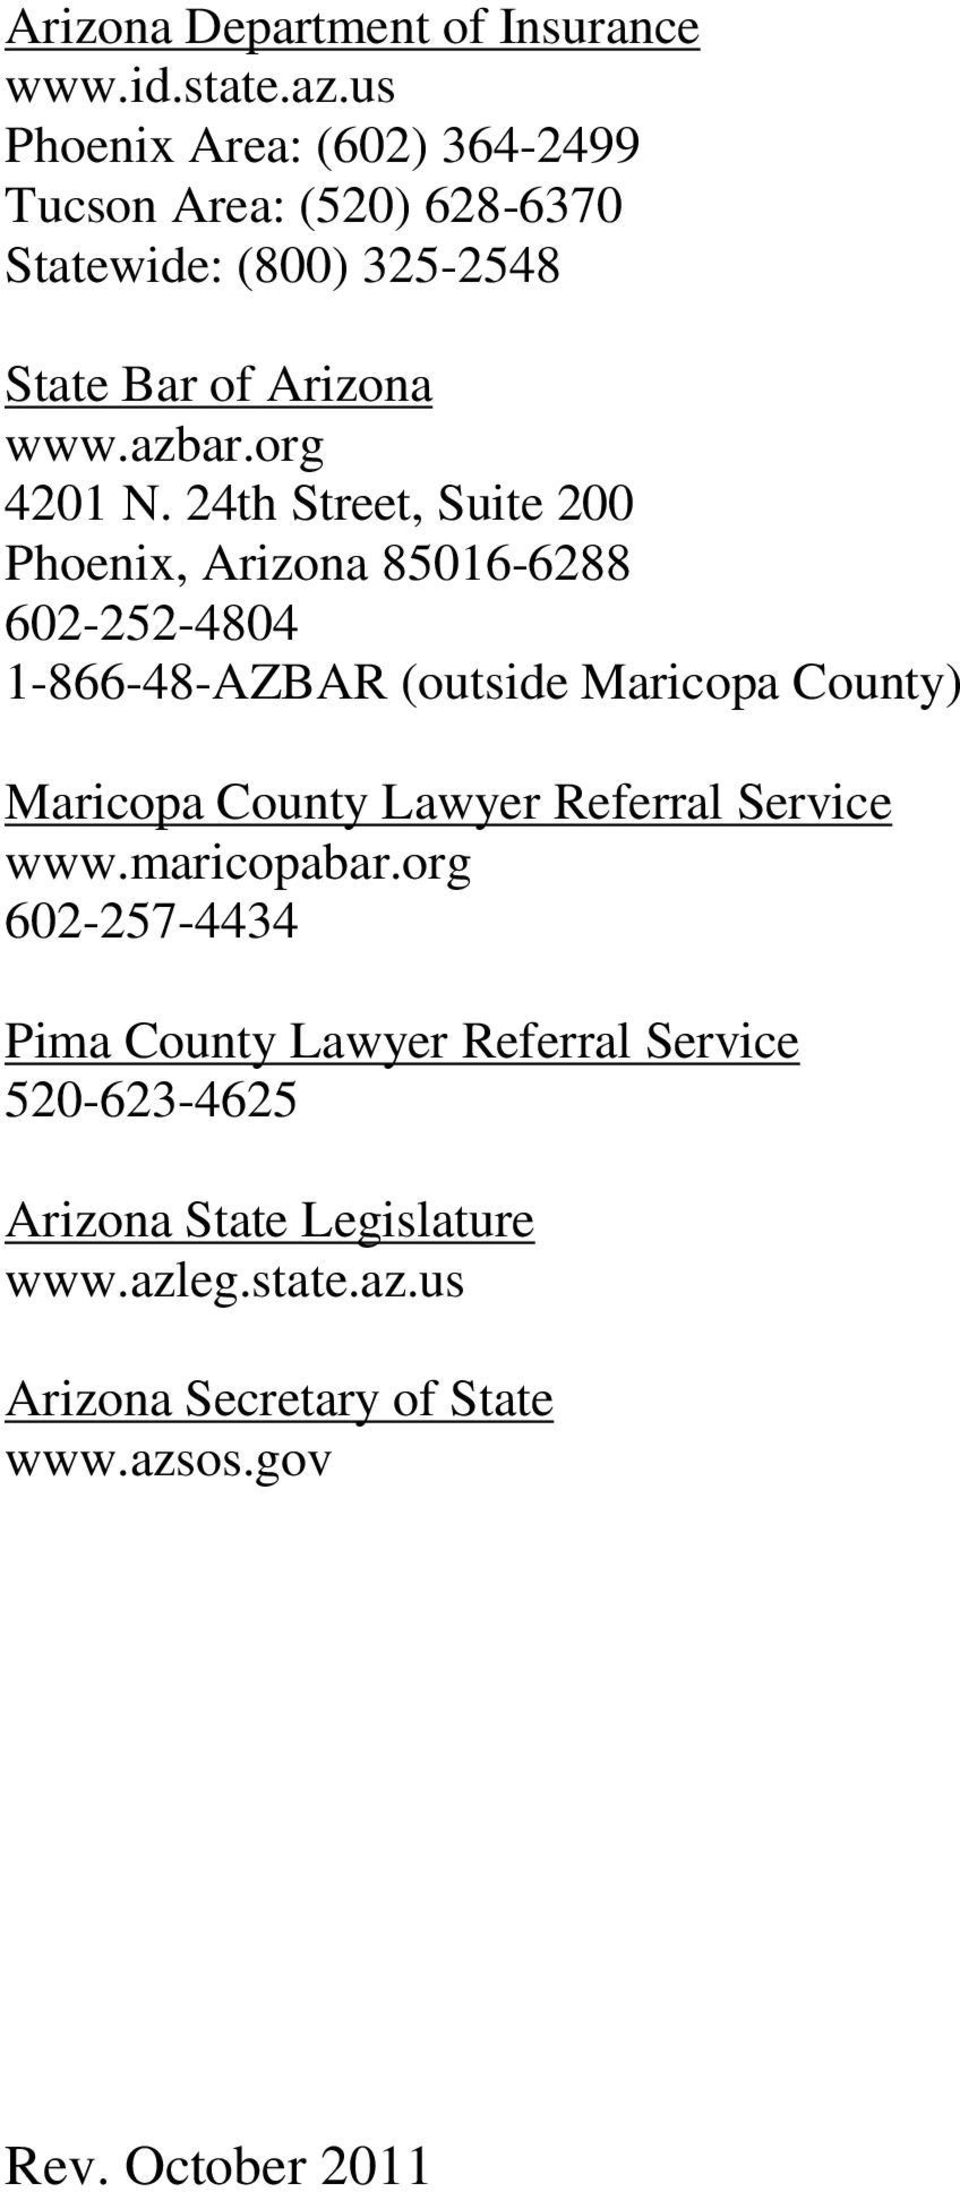 24th Street, Suite 200 Phoenix, Arizona 85016-6288 602-252-4804 1-866-48-AZBAR (outside Maricopa County) Maricopa County Lawyer